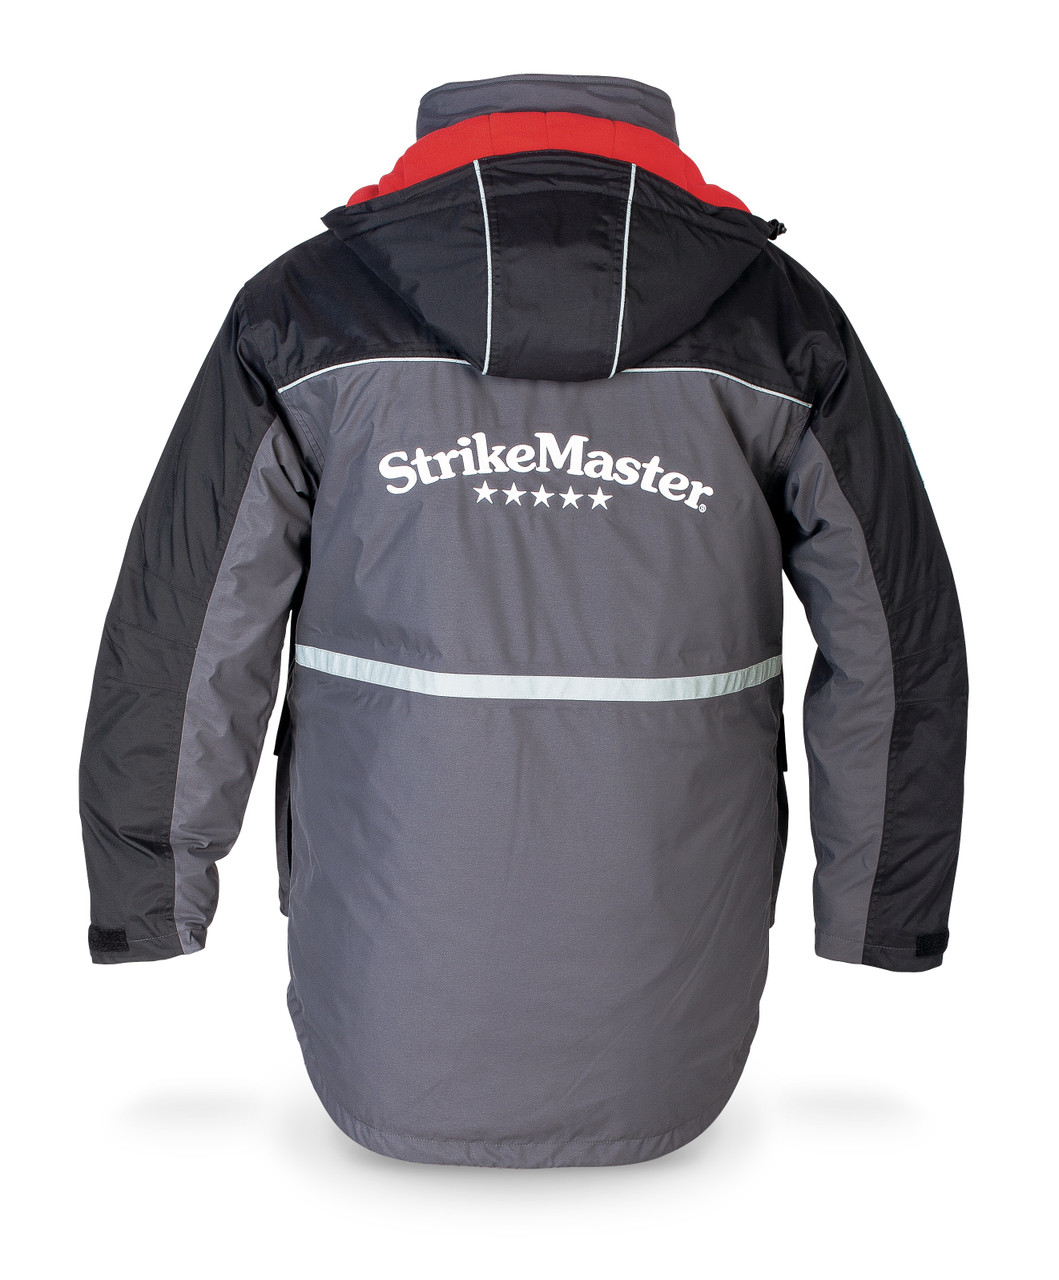 Strikemaster Men's Surface Ice Fishing Jacket